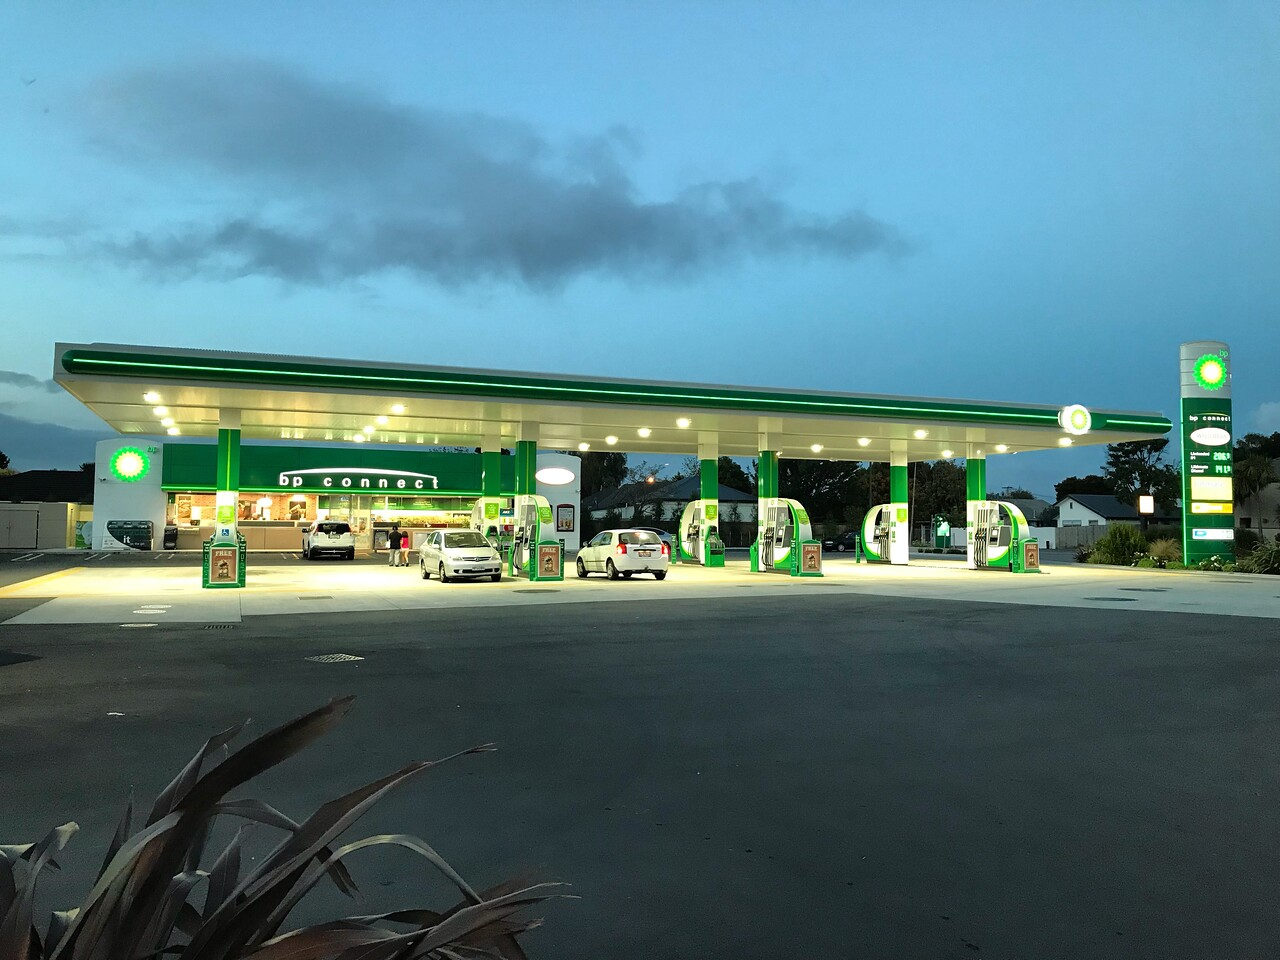 2018-03-05 - 36 BP petrol station in Chirstchurch NZ